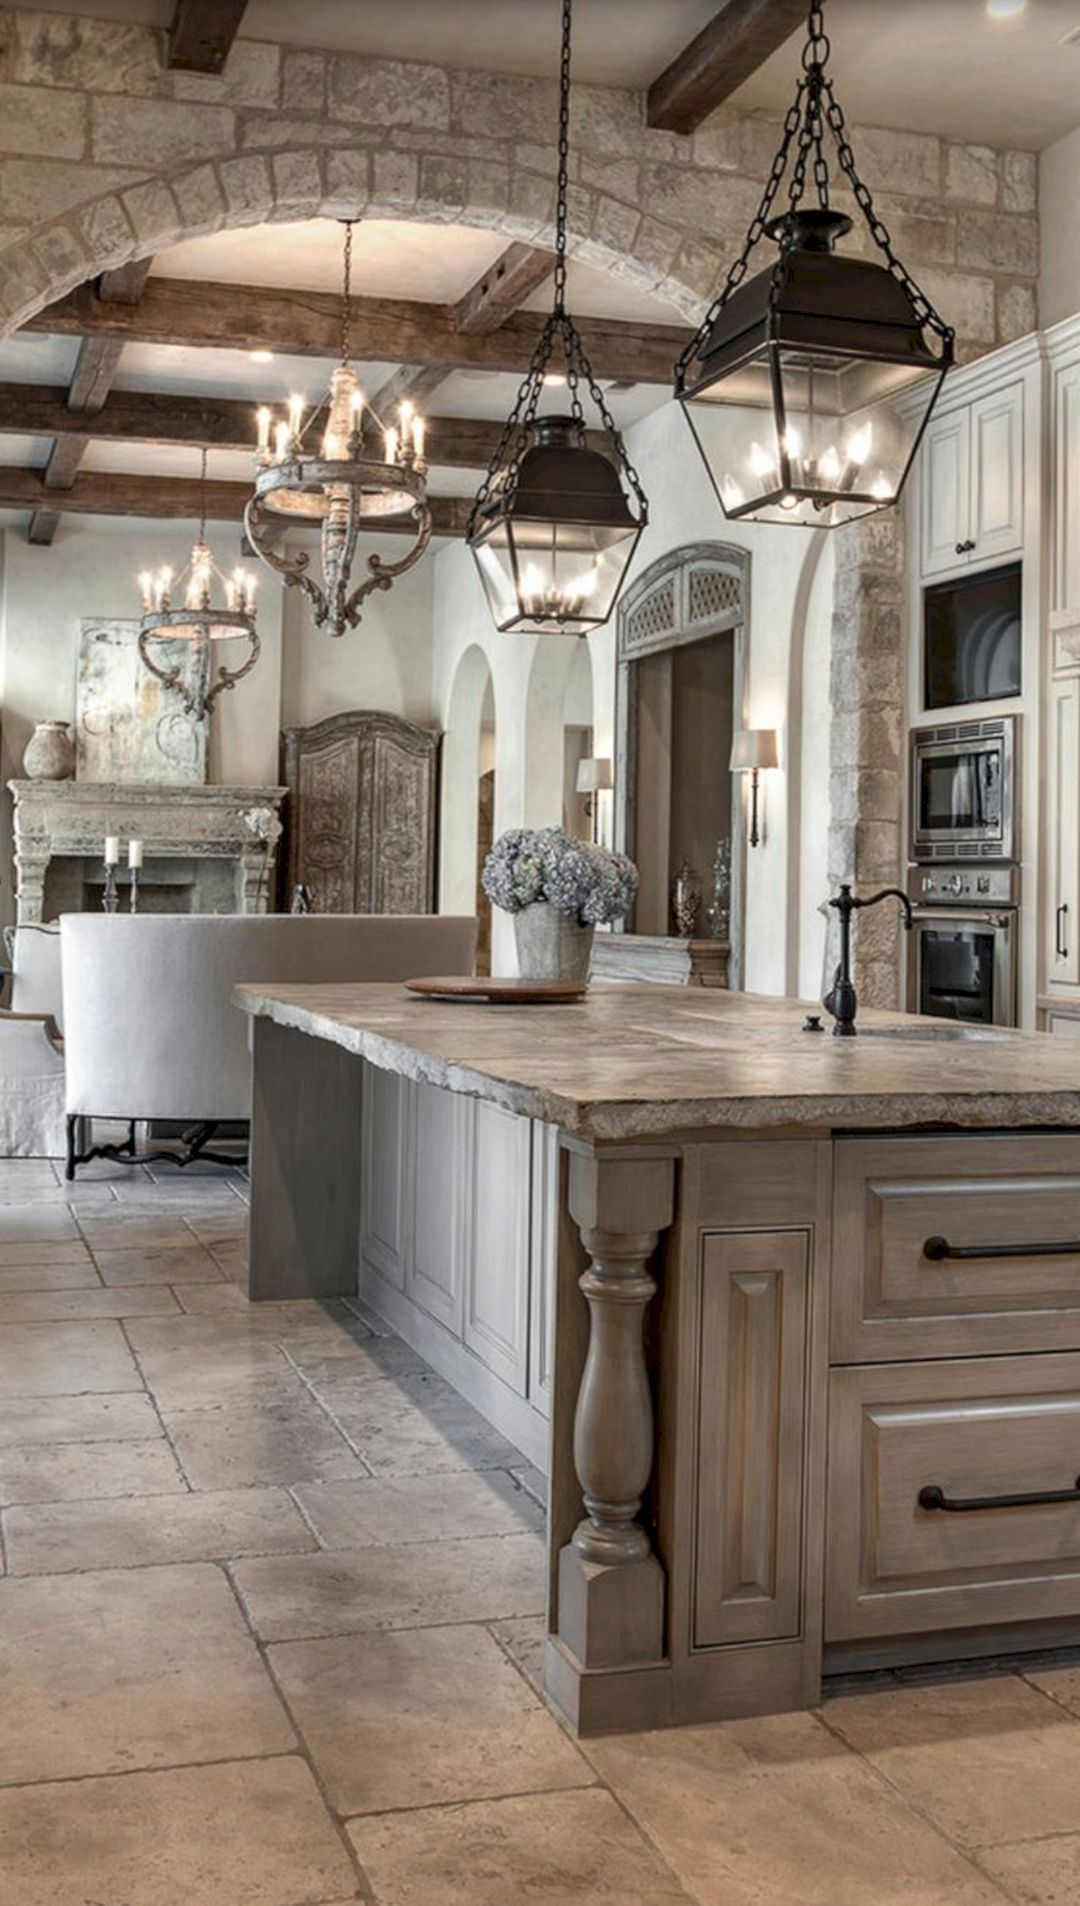 60+ Best Rustic Italian Houses Decorating Ideas | Italian houses ...